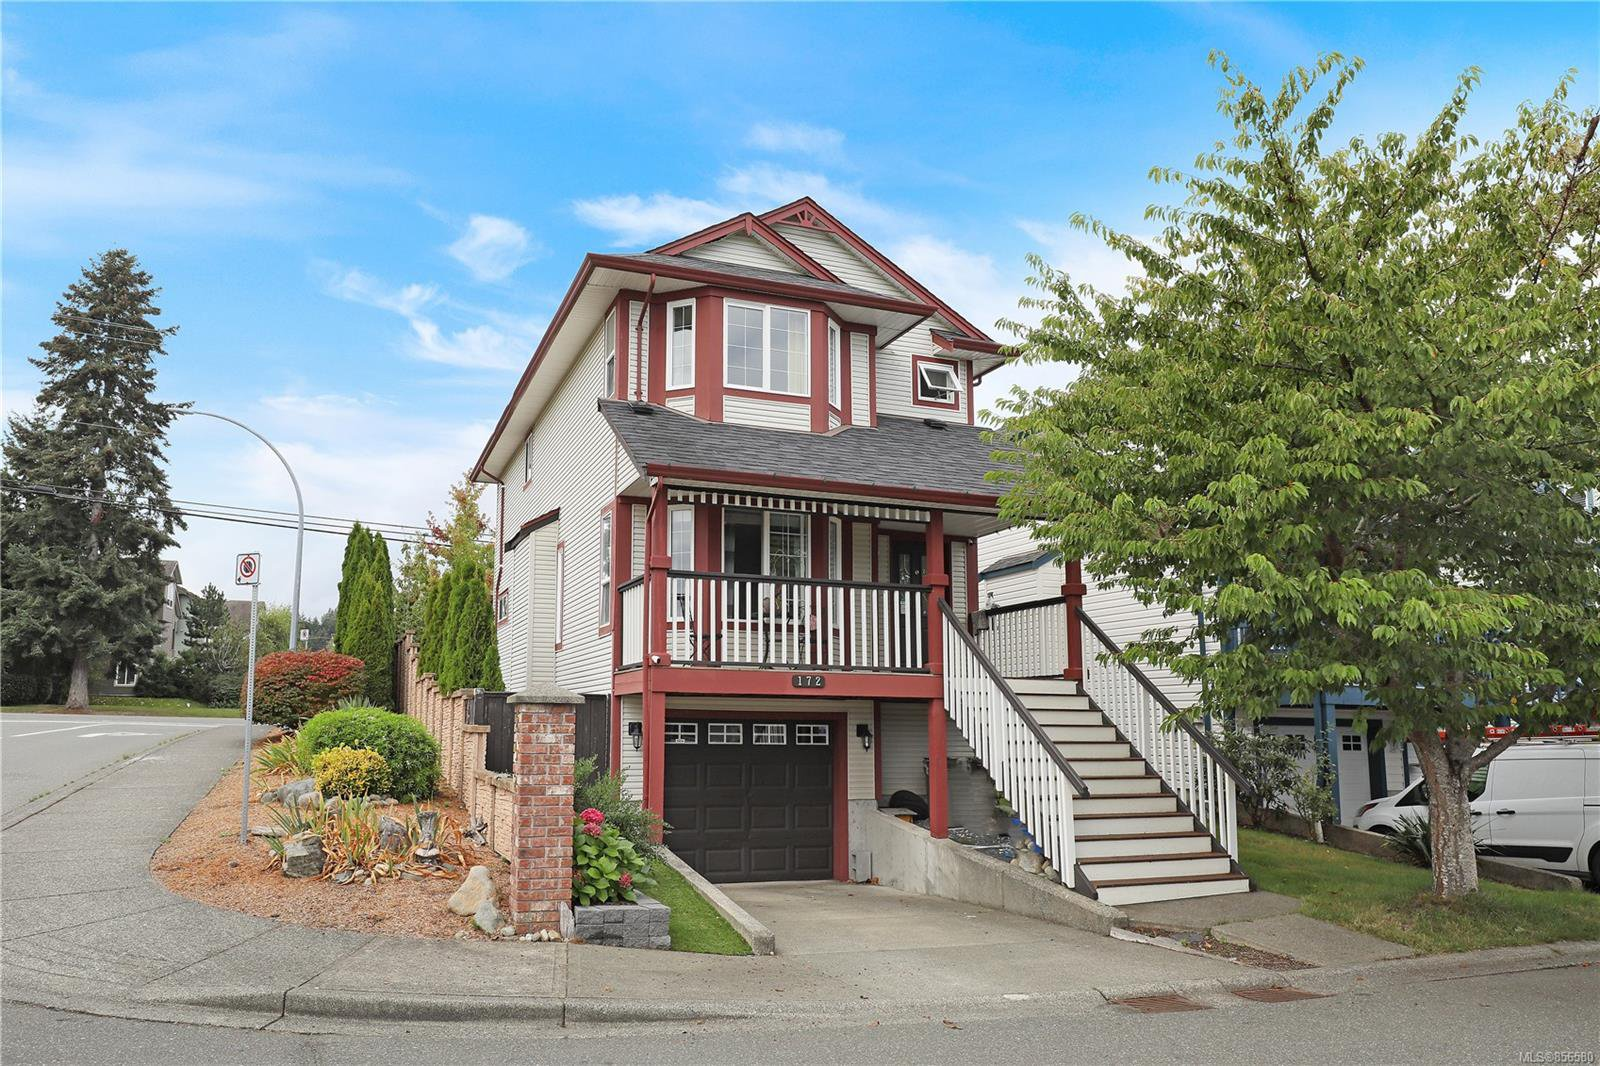 Main Photo: 172 202 31st St in : CV Courtenay City House for sale (Comox Valley)  : MLS®# 856580